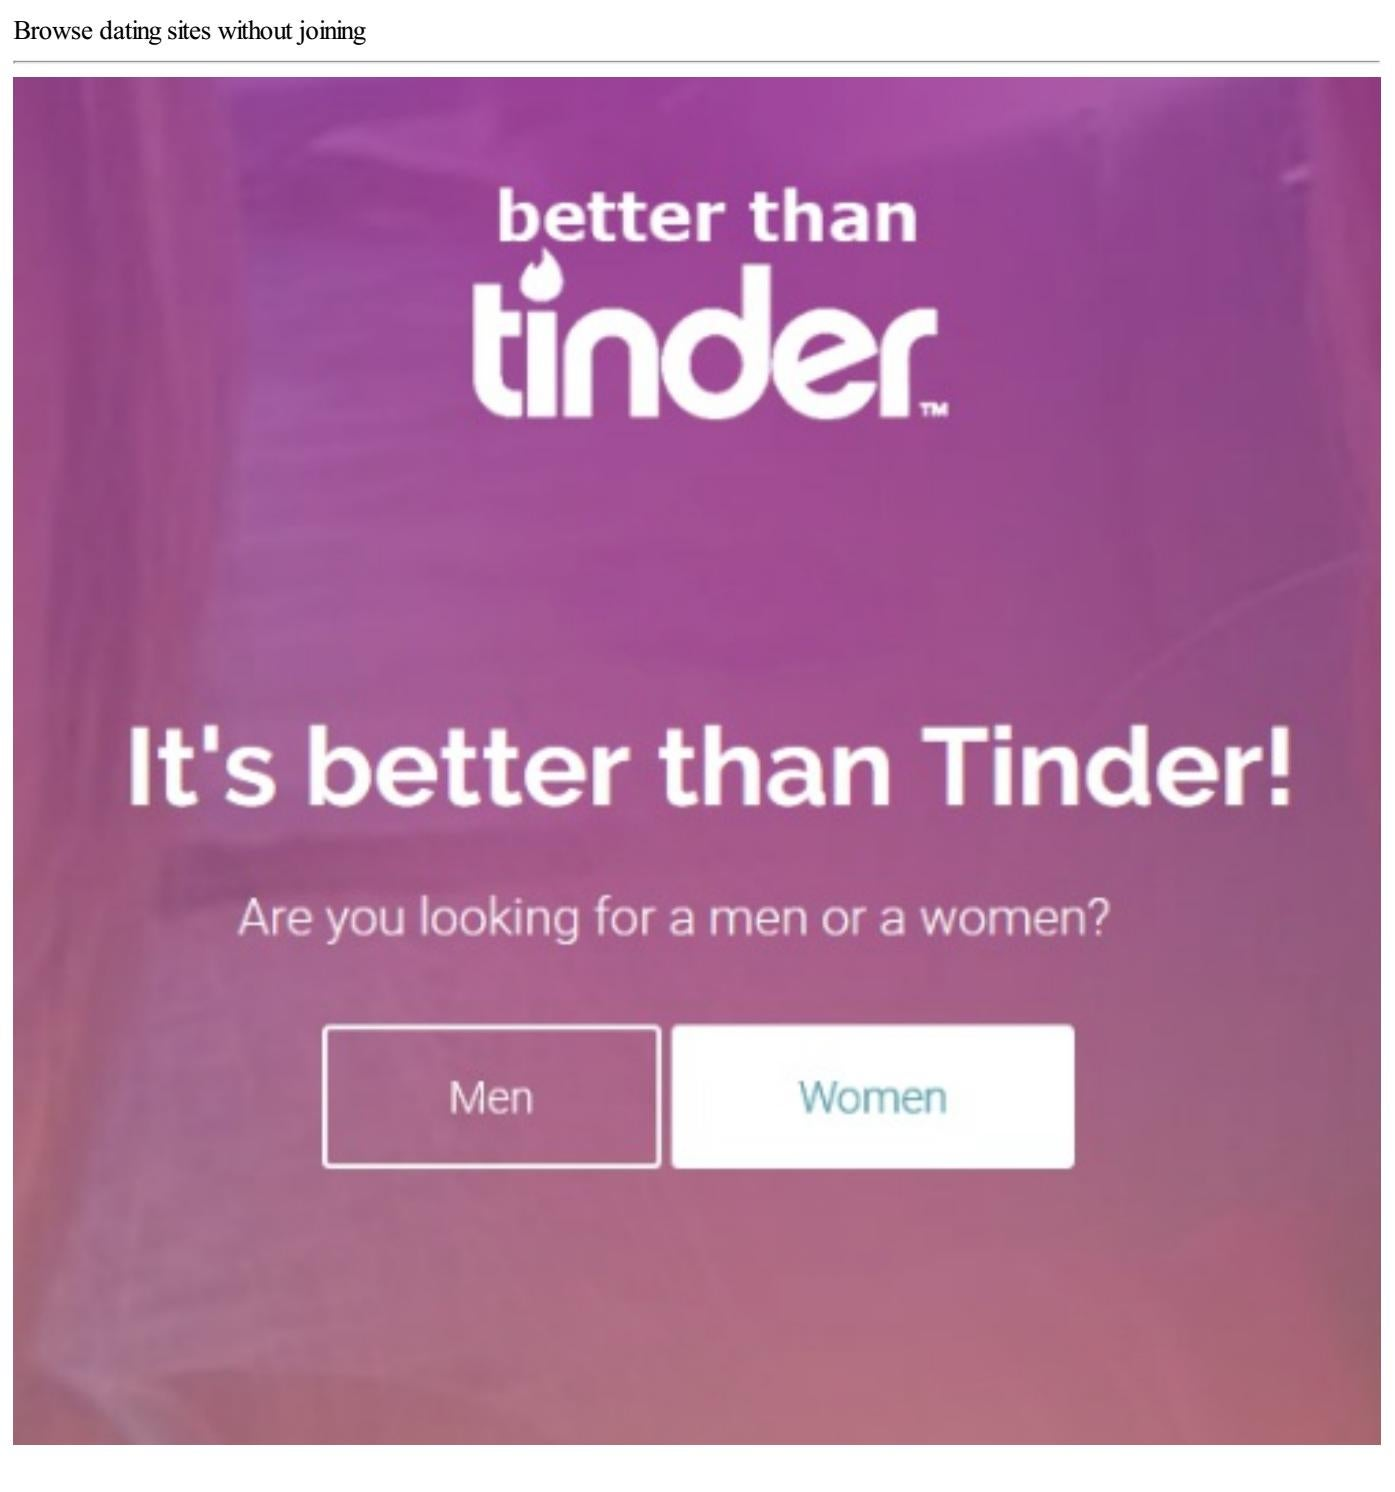 Browse dating fat dating website